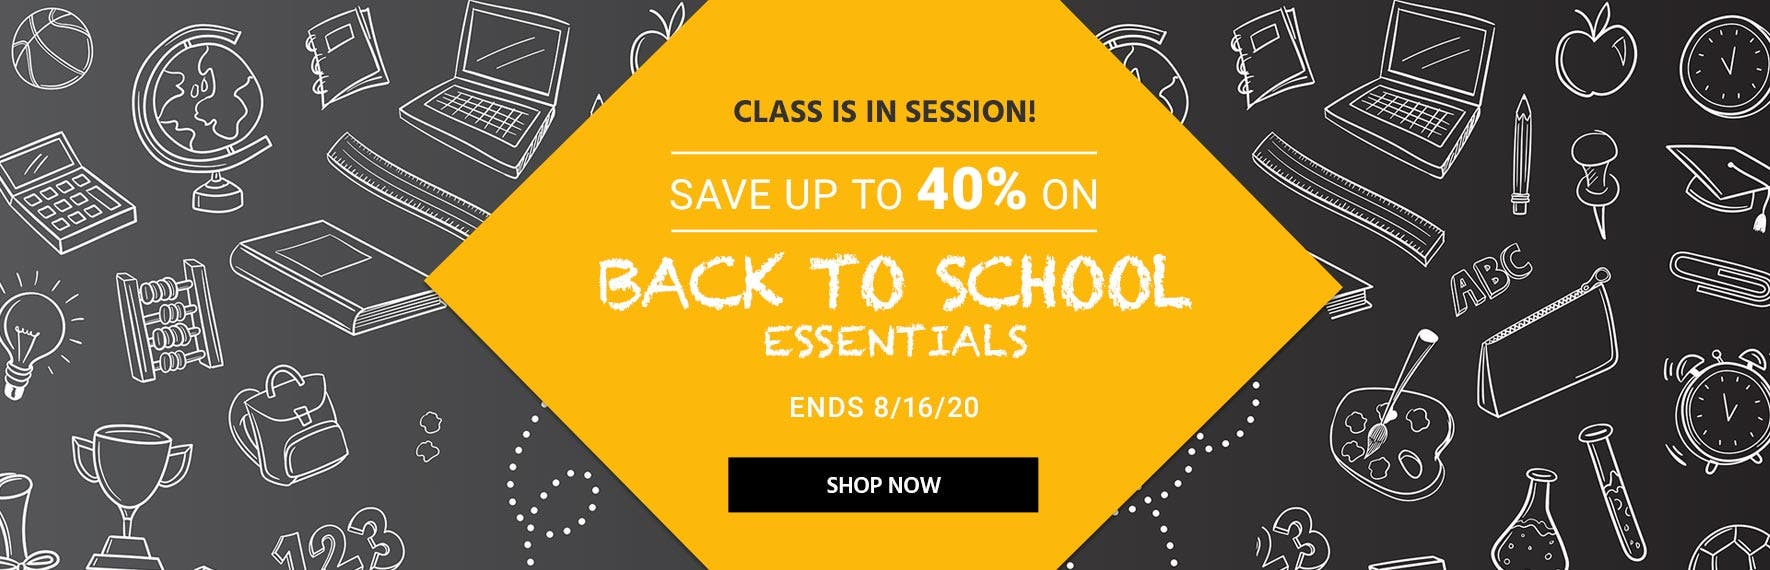 Class is in Session!  Save up to 40% on Back to School Essentials Ends 8/16/20